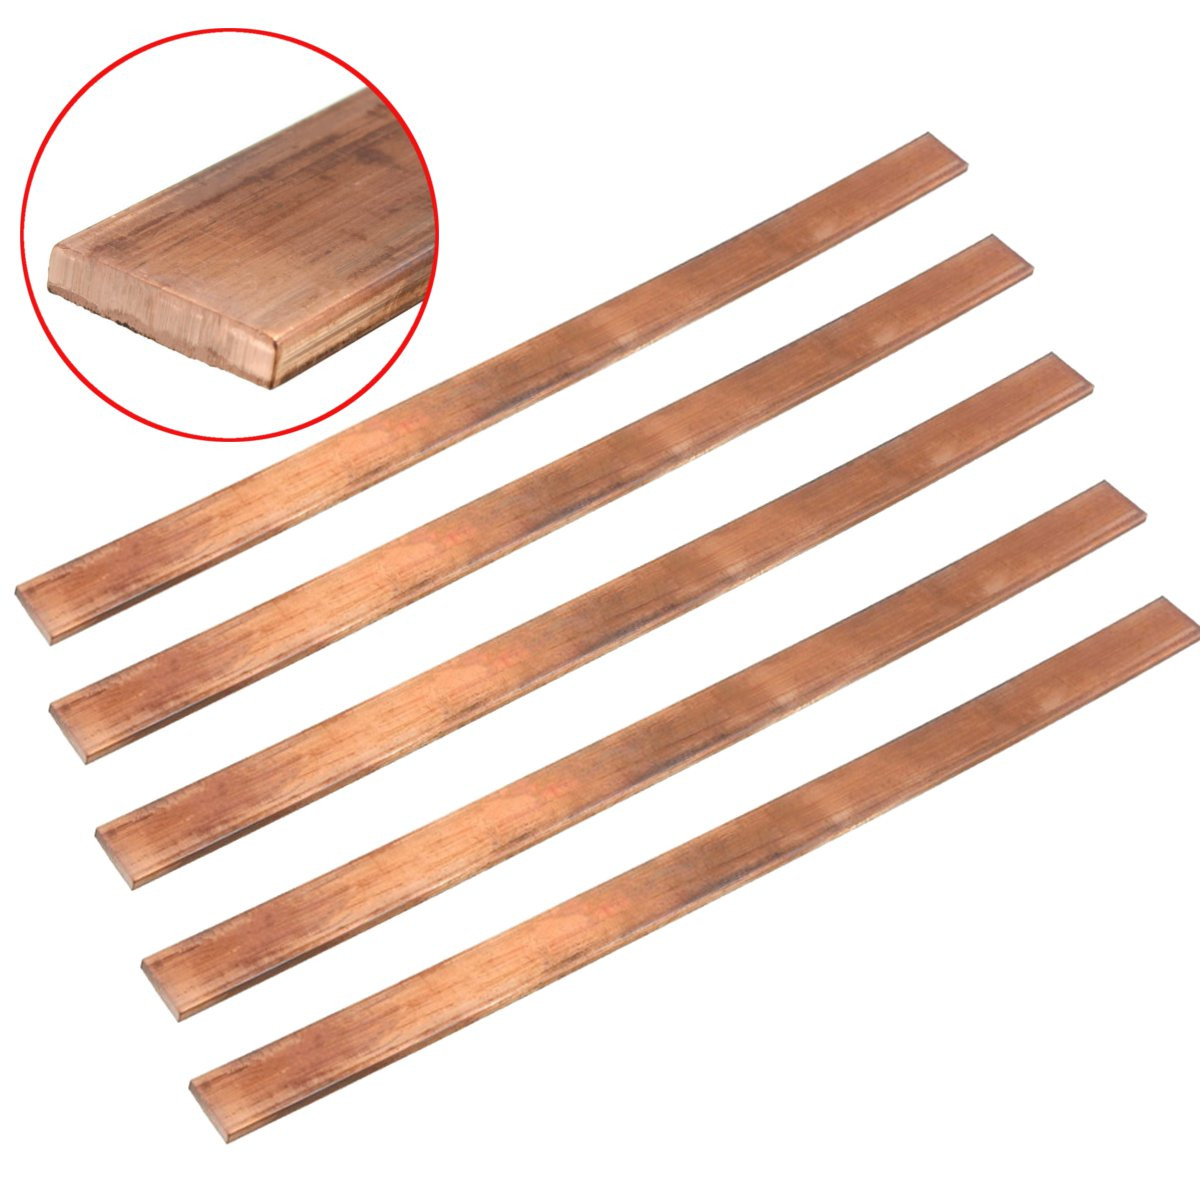 1pcs T2 Purple Copper Cu Flat Bar Plate 3mm X 15mm X 250mm Metal Strip For Electrical Appliances Construction Industries